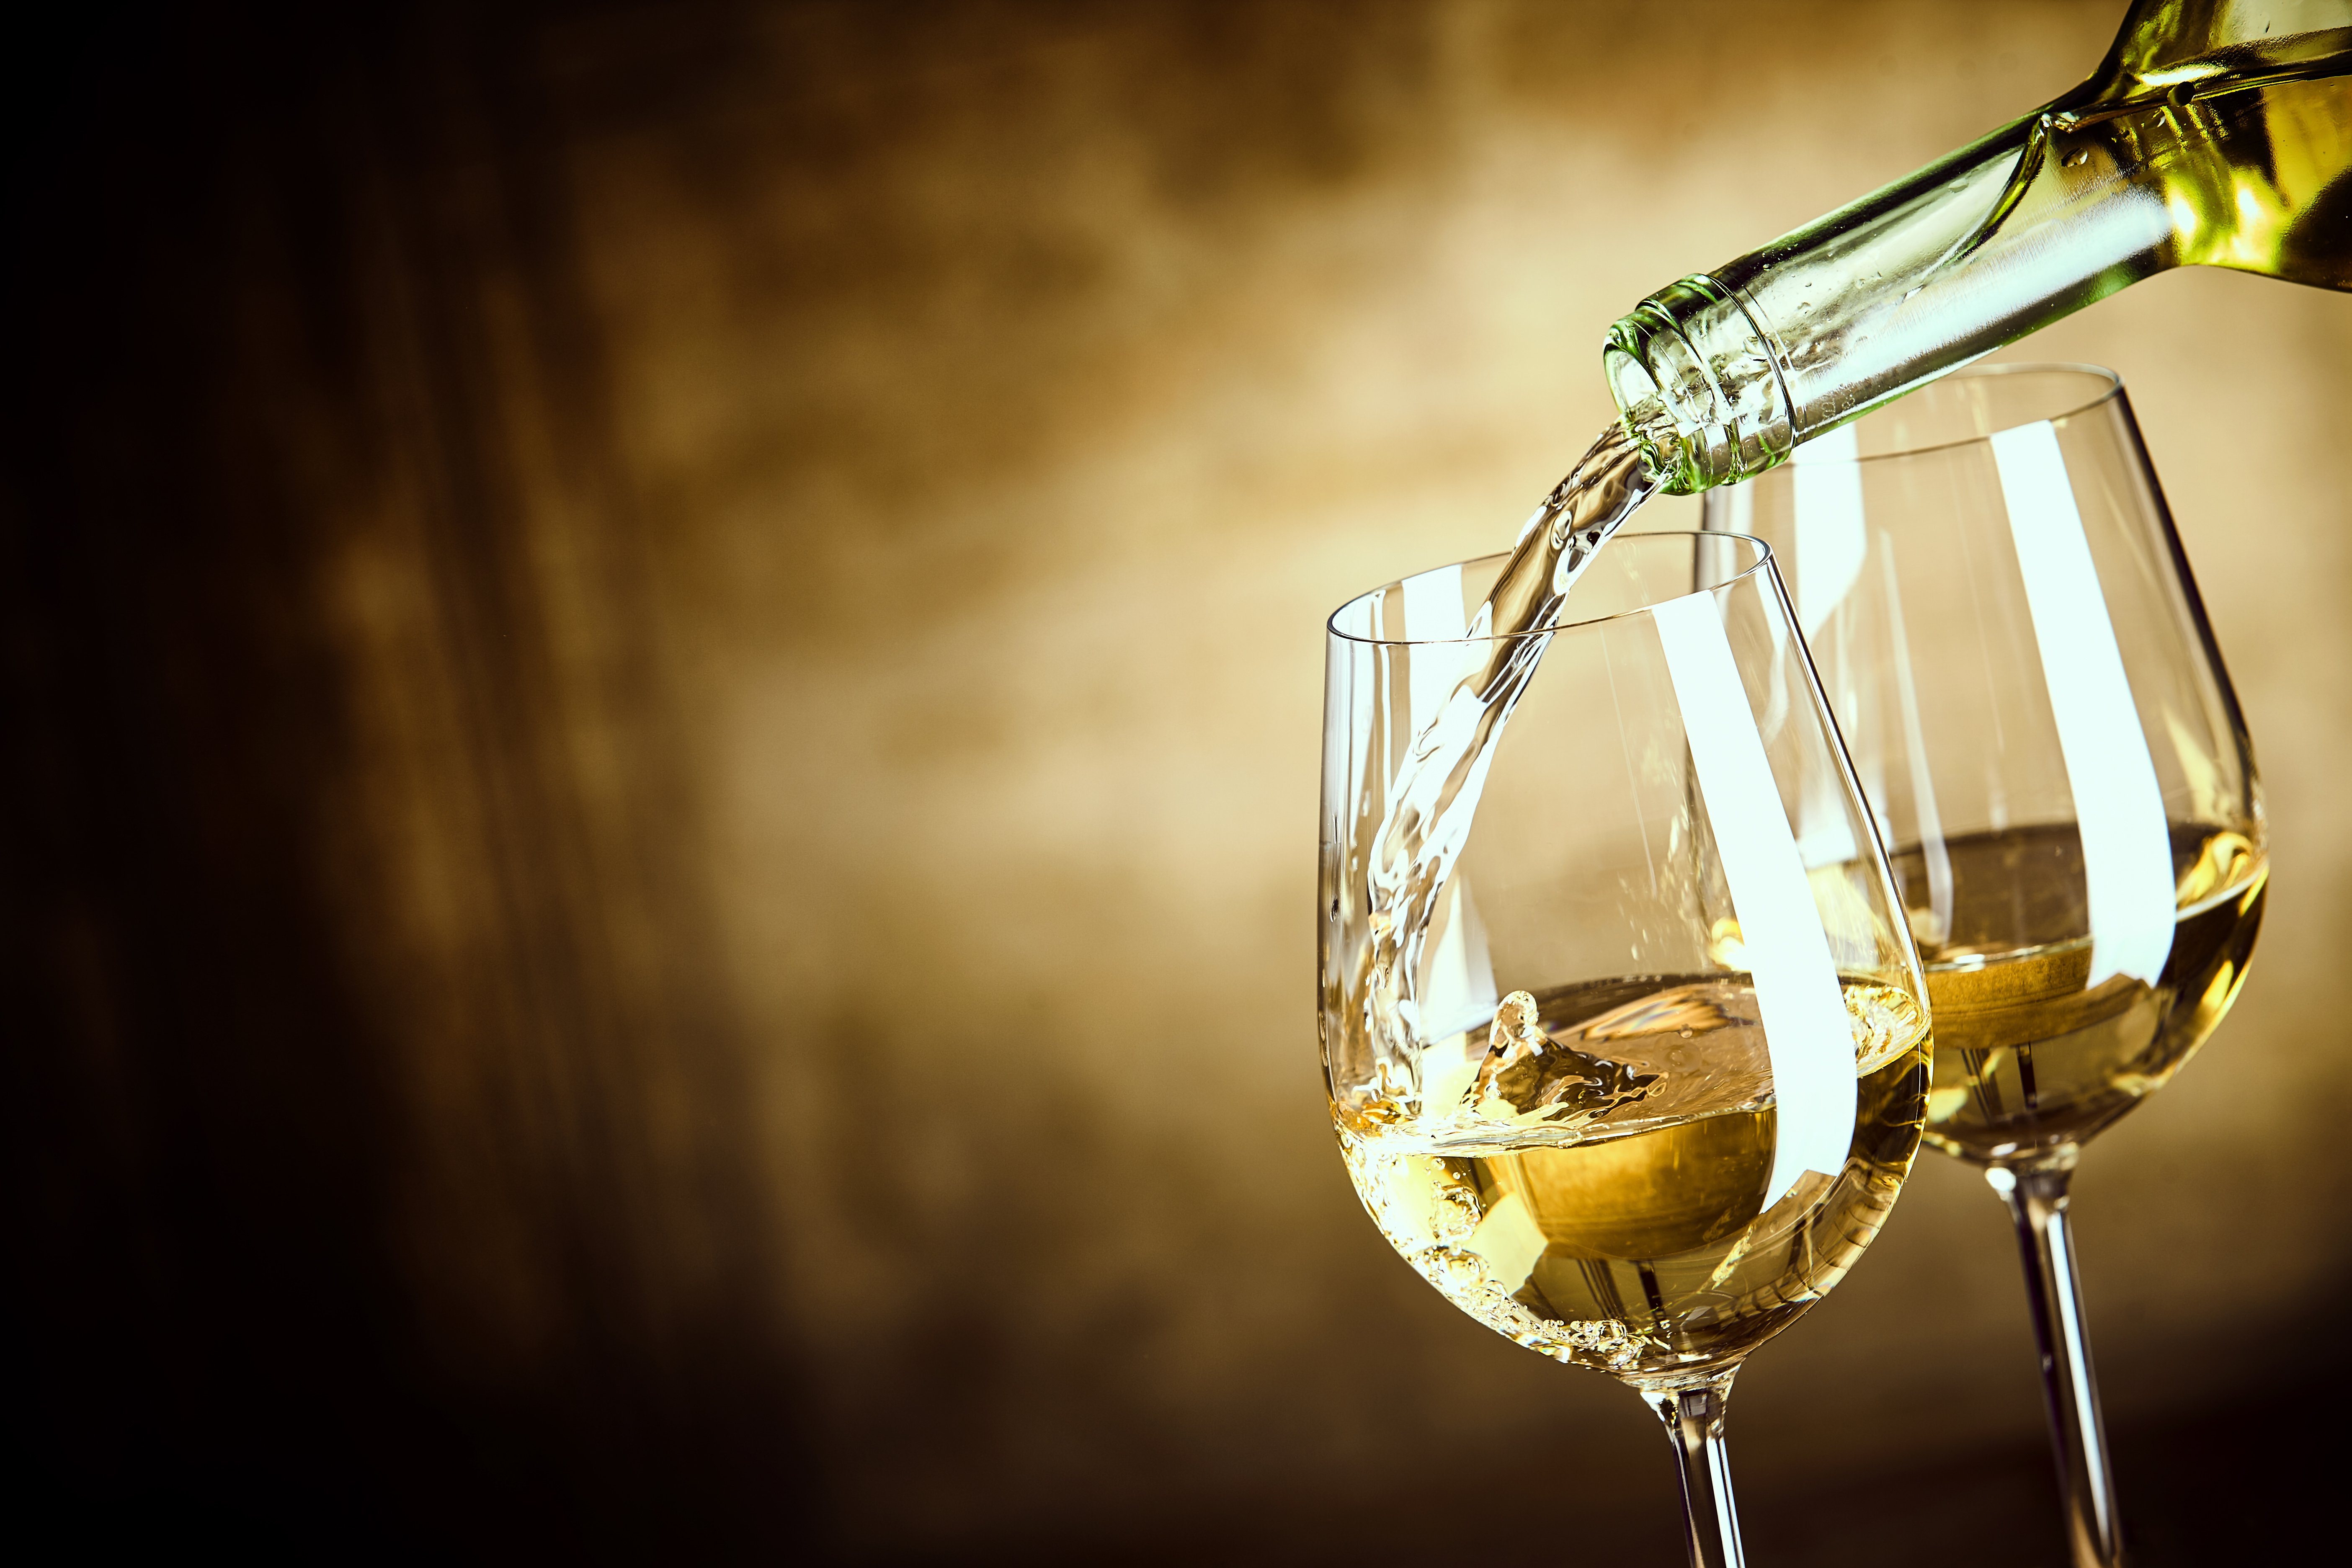 Two glasses of wine with white wine being poured into one of them